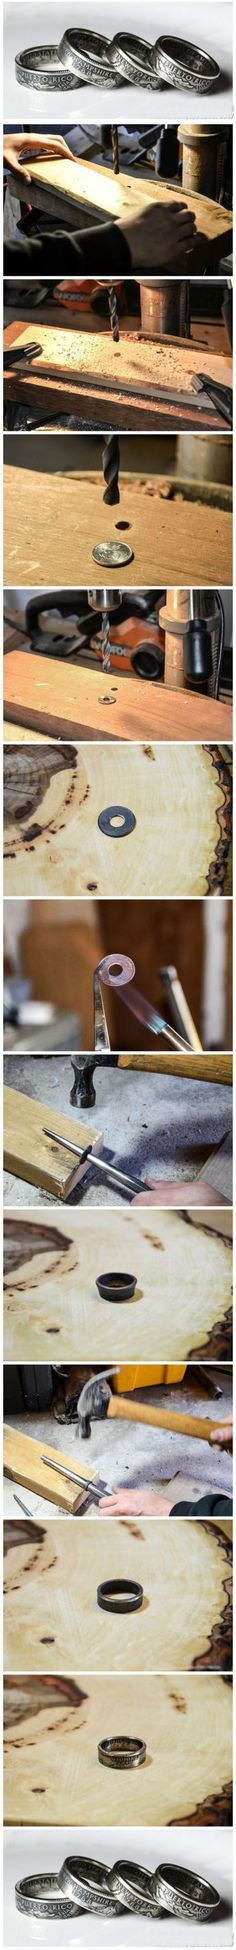 Coin Ring how to make a ring out of a circle cut from sheet. Metal Projects, Welding Projects, Metal Crafts, Fun Projects, Fun Crafts, Diy And Crafts, Arts And Crafts, Coin Ring, Blacksmithing